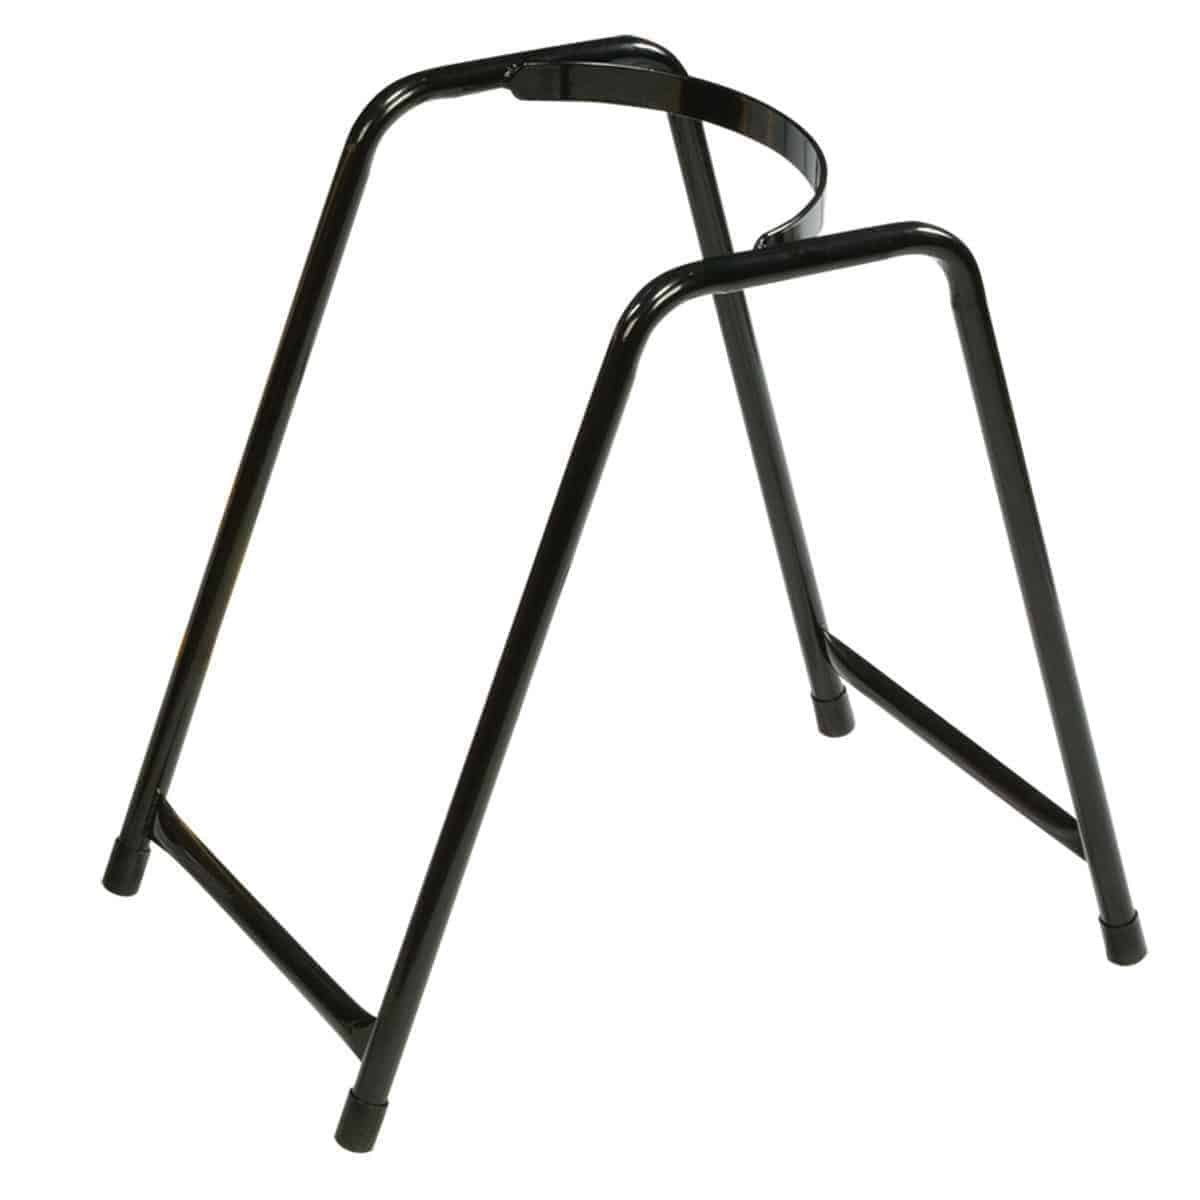 Deluxe Arched Metal Golf Bag Stand